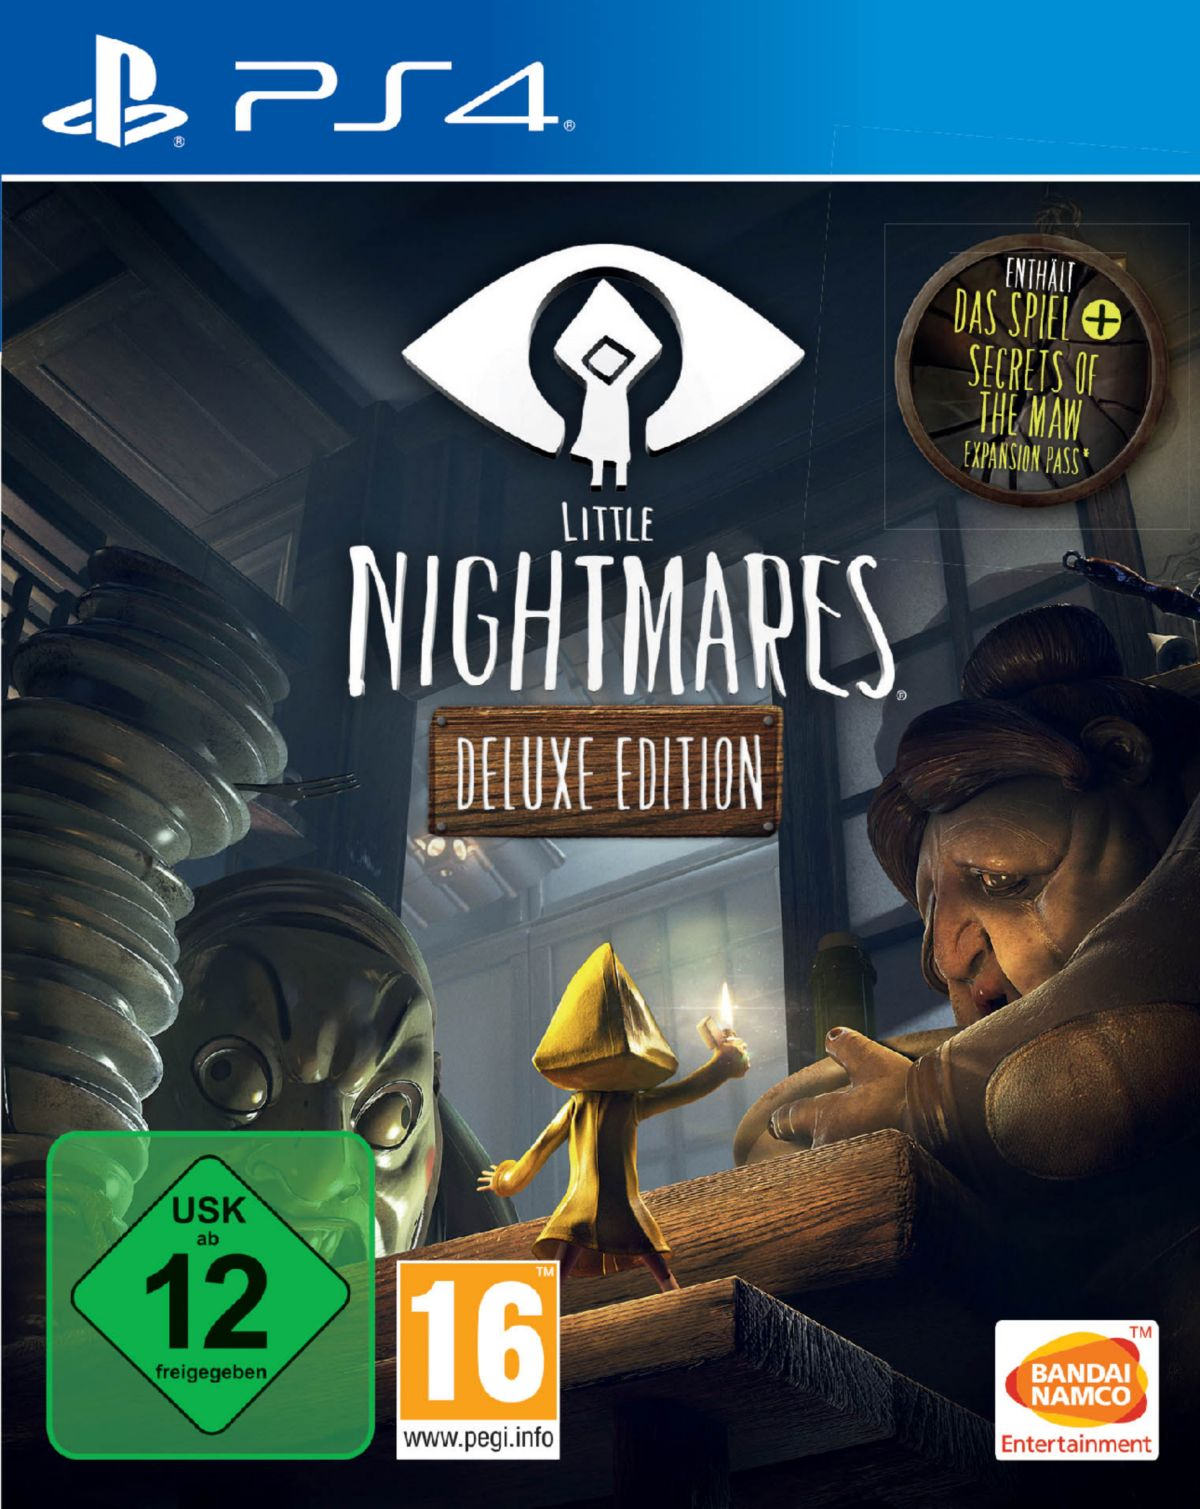 Bandai Namco Little Nightmares Deluxe Edition »...